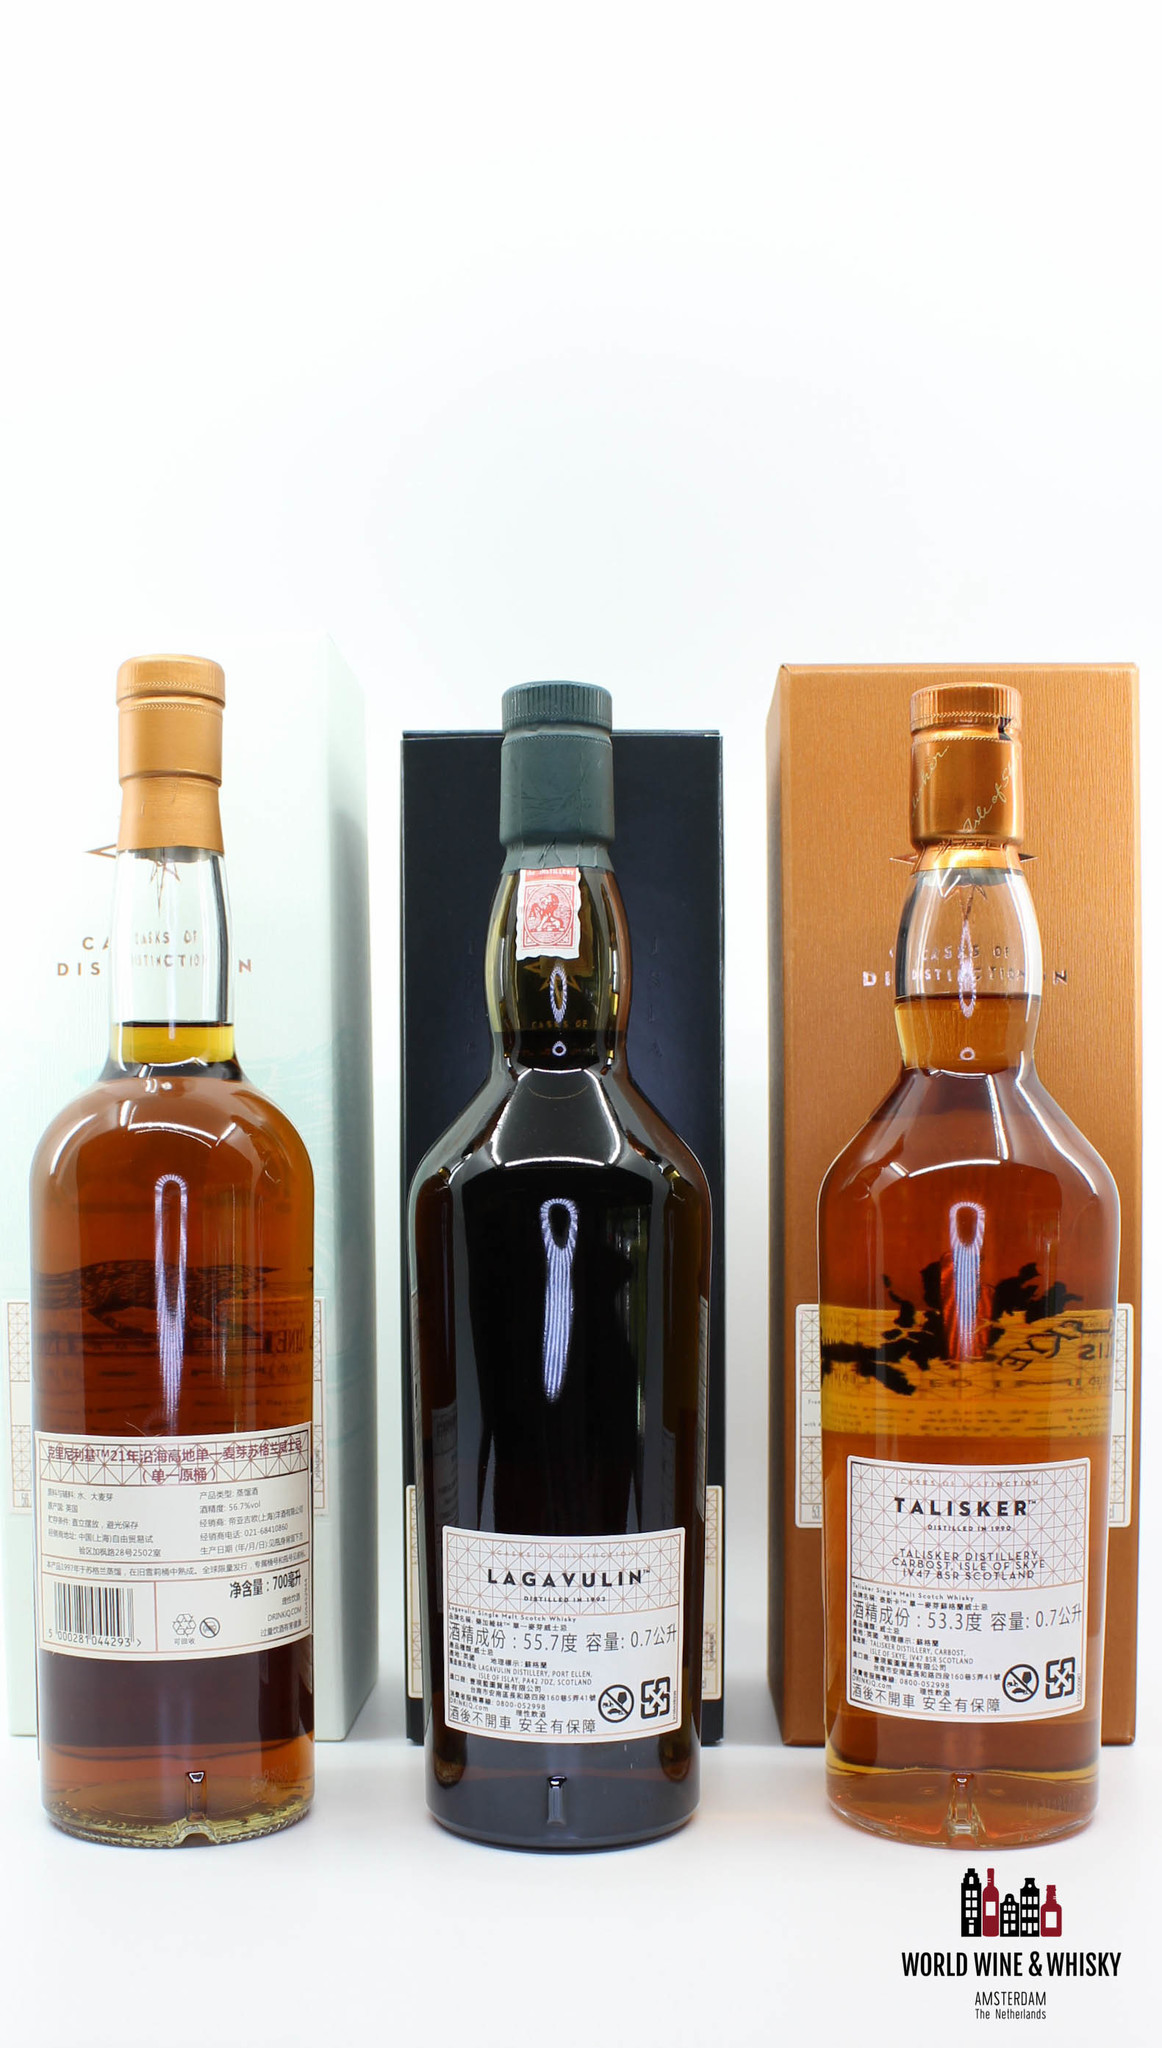 Clynelish Cask of Distinction set (Clynelish 21 YO, Lagavulin 23 YO and Talisker 26 YO) -  Boyao Zhao Exclusive